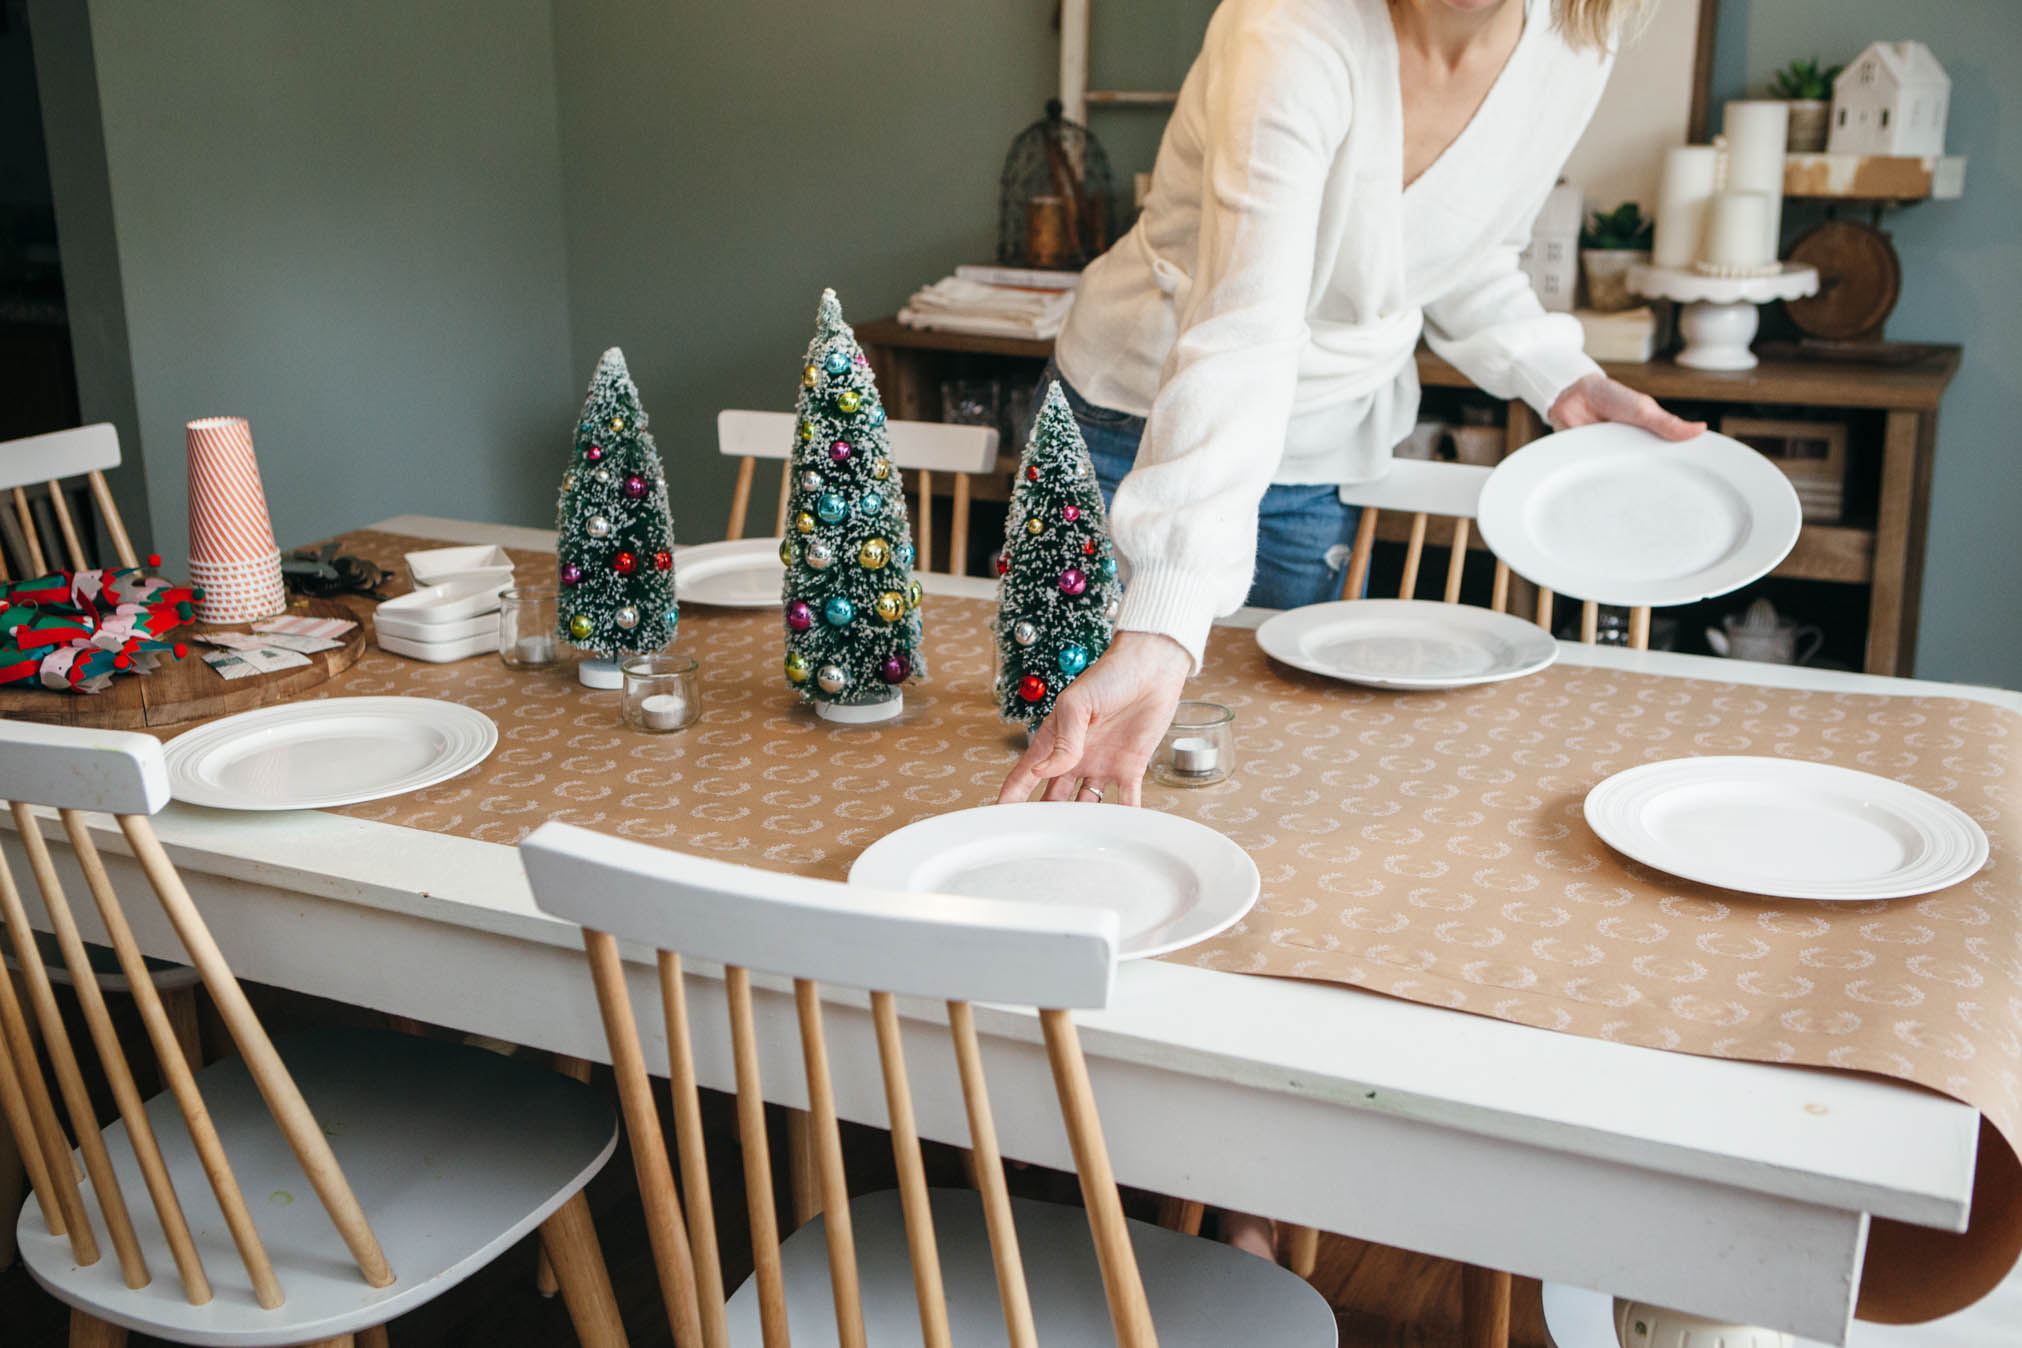 setting table for holiday guests with eBay finds